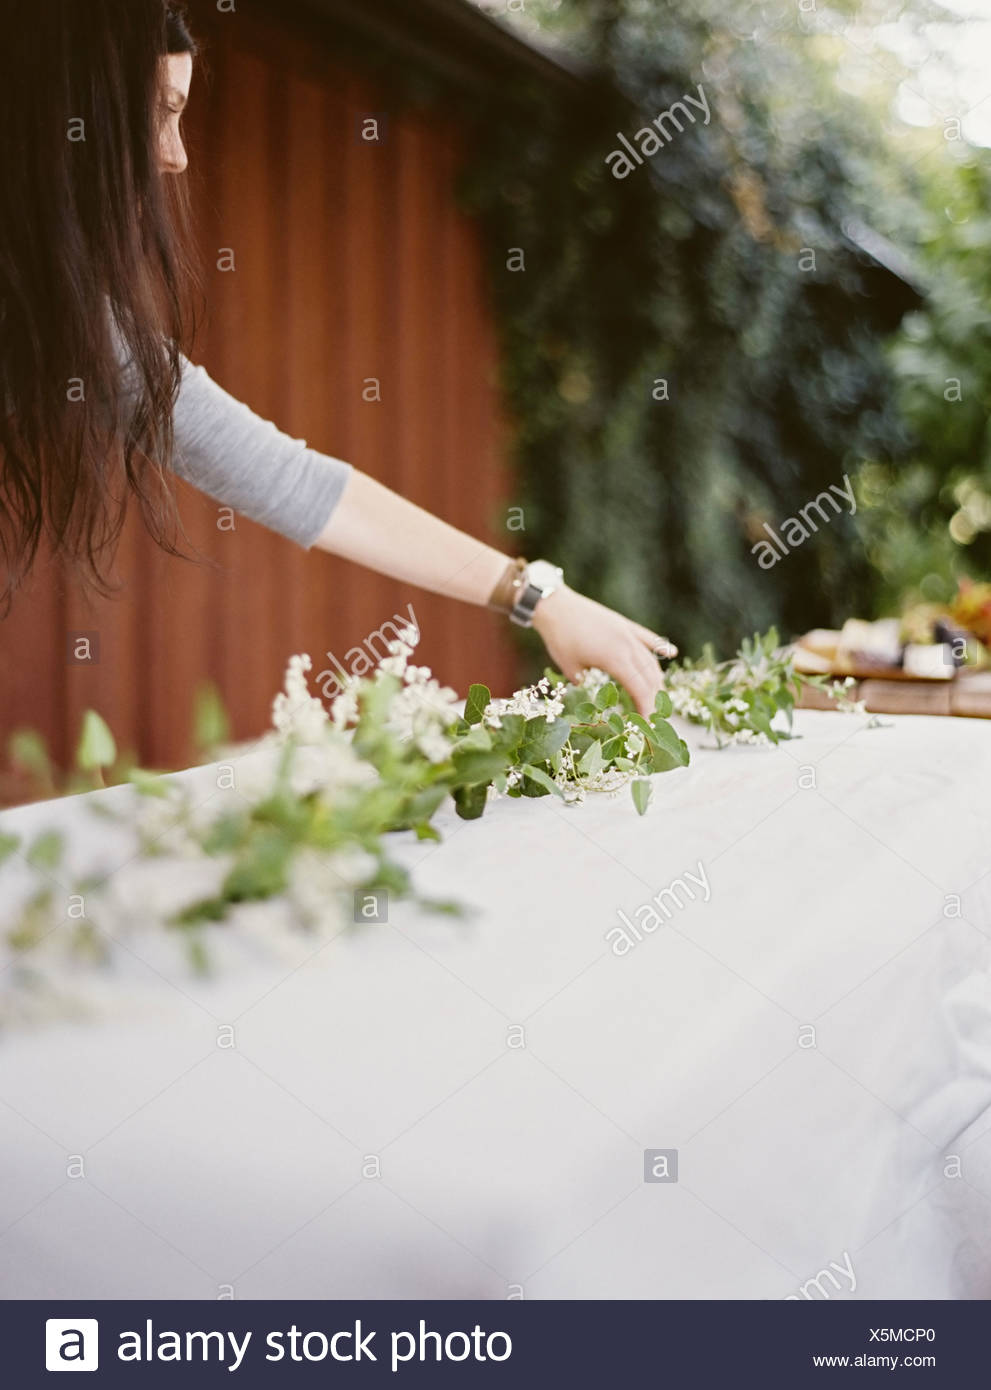 A woman with long hair by table laid outside with a white cloth and central foliage table decoration Place settings - Stock Image